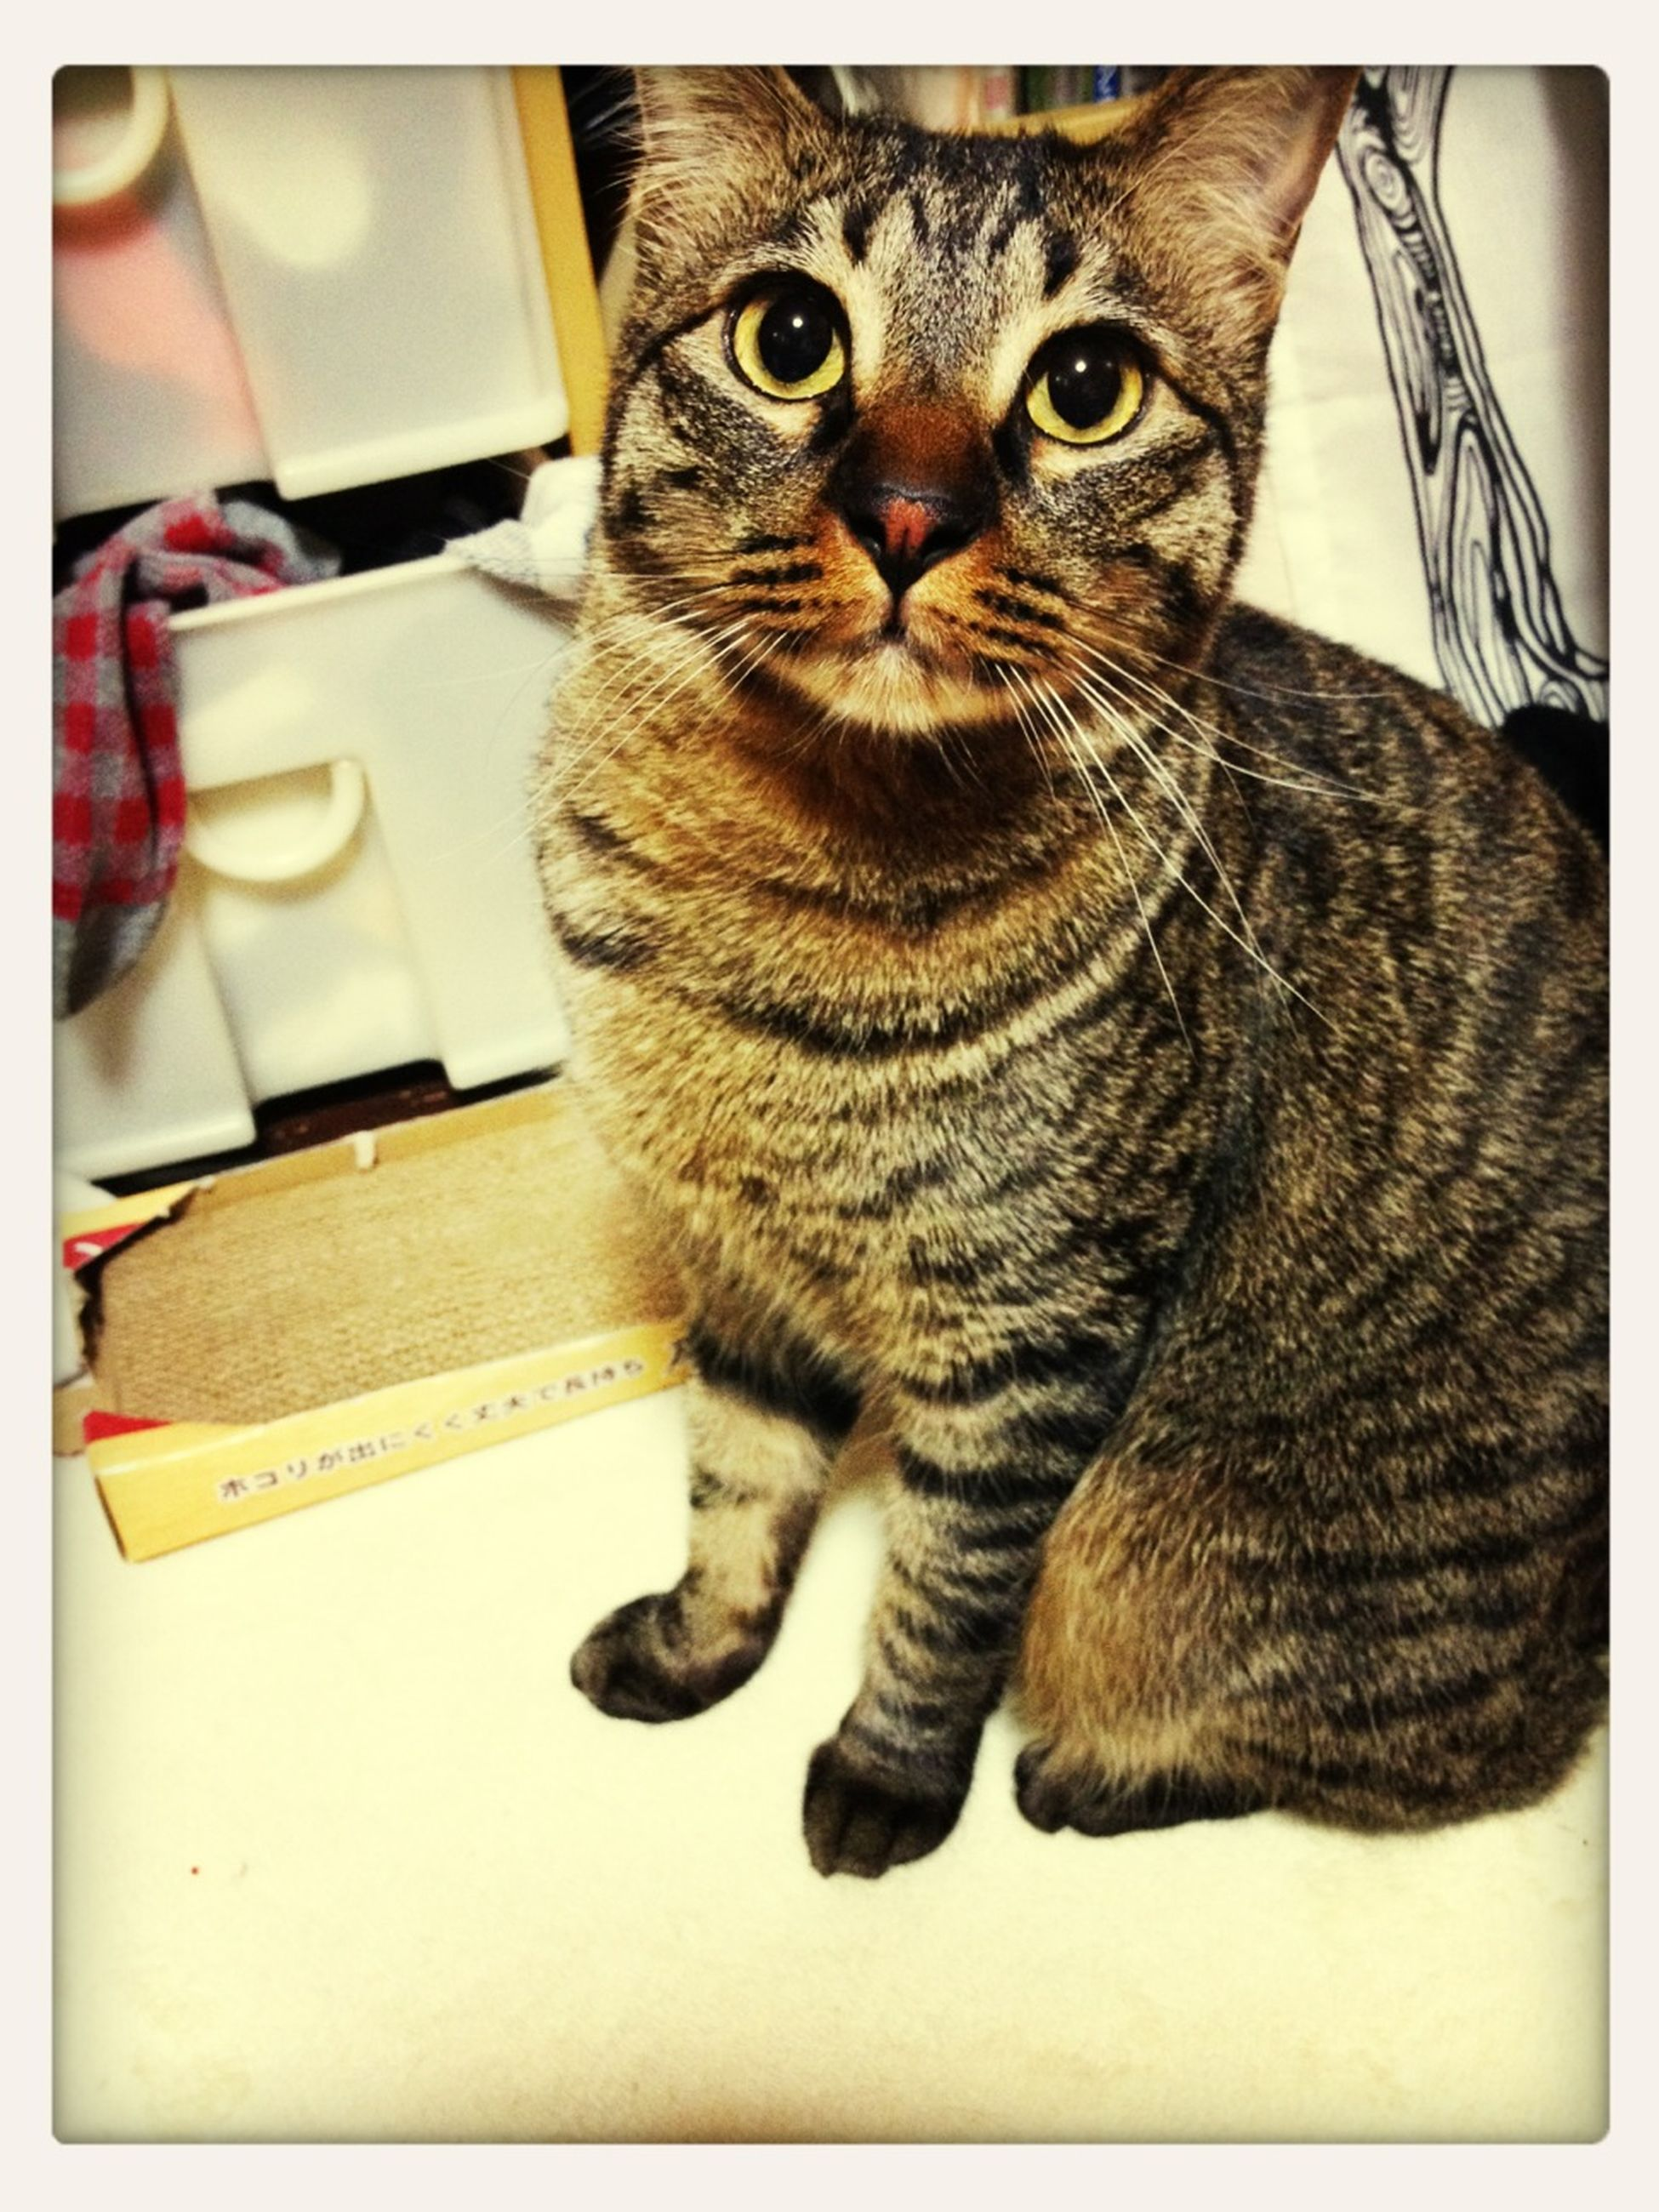 domestic cat, cat, one animal, pets, animal themes, feline, indoors, domestic animals, mammal, whisker, portrait, looking at camera, relaxation, full length, alertness, auto post production filter, sitting, high angle view, close-up, transfer print